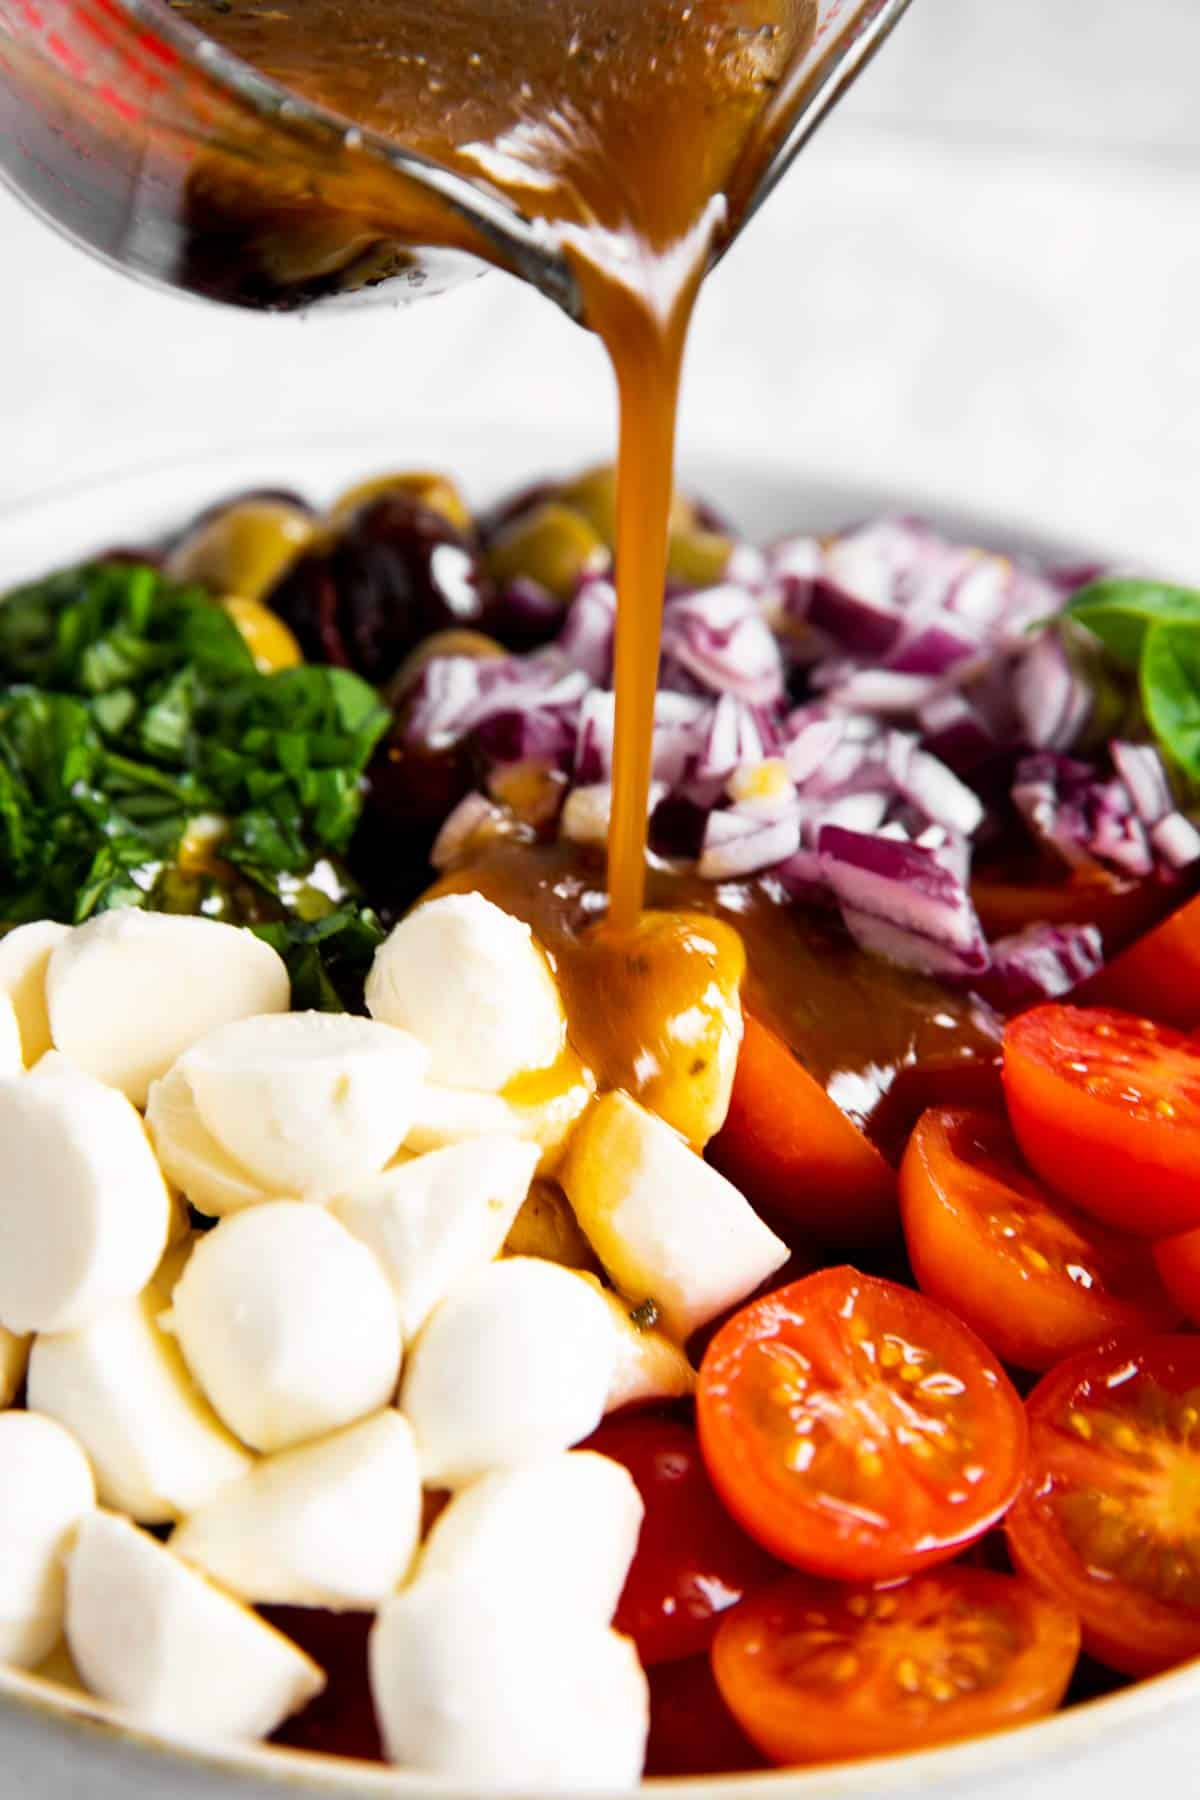 pouring balsamic vinaigrette dressing over ingredients for cherry tomato salad